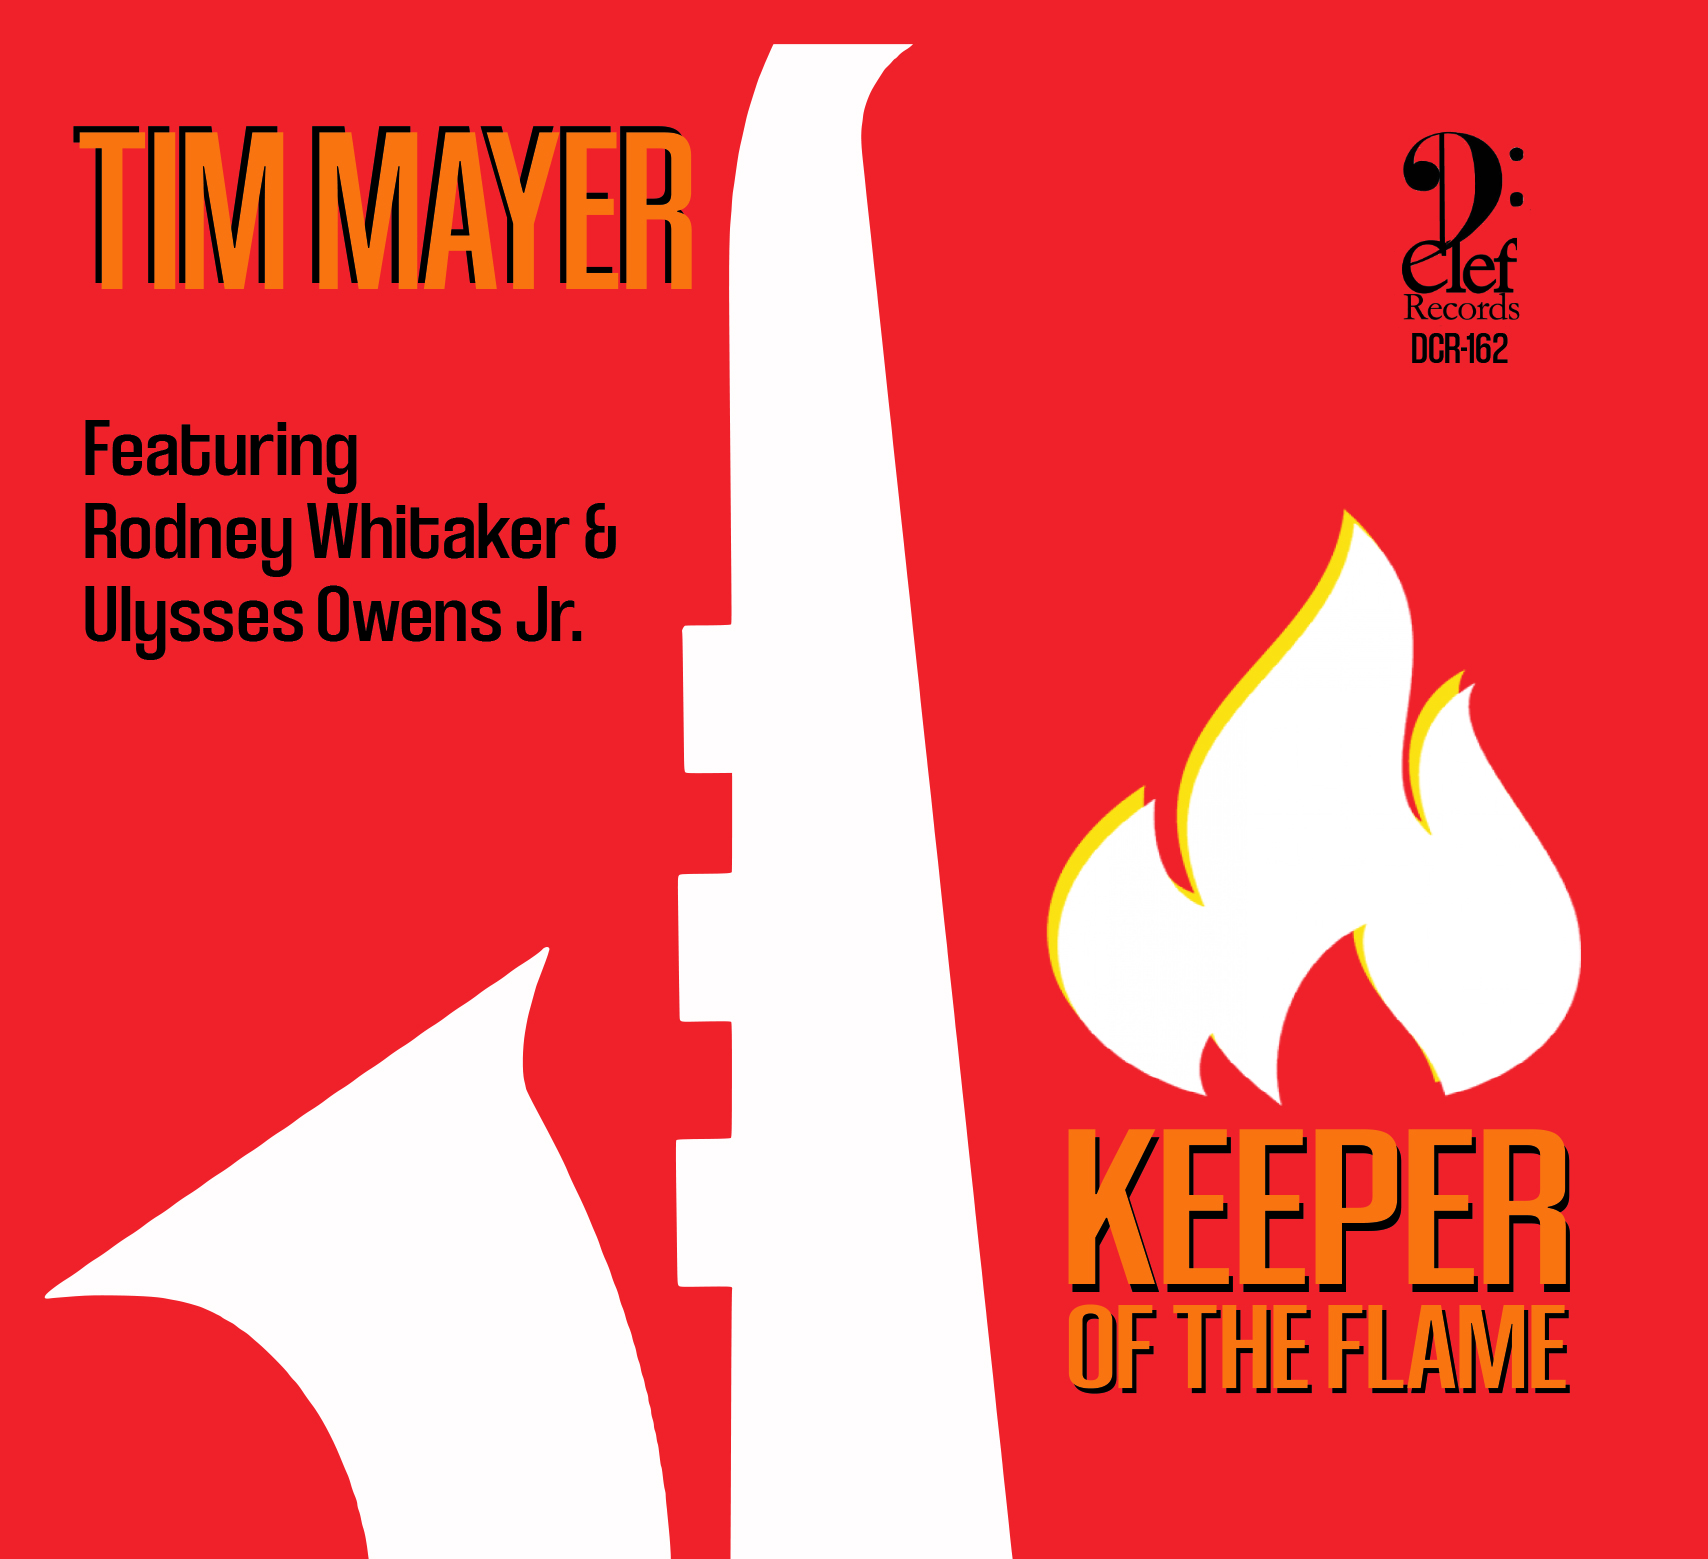 NEW RELEASE: Saxophonist Tim Mayer's 'Keeper of the Flame' Due Out June 4, 2021 via D-Clef Records